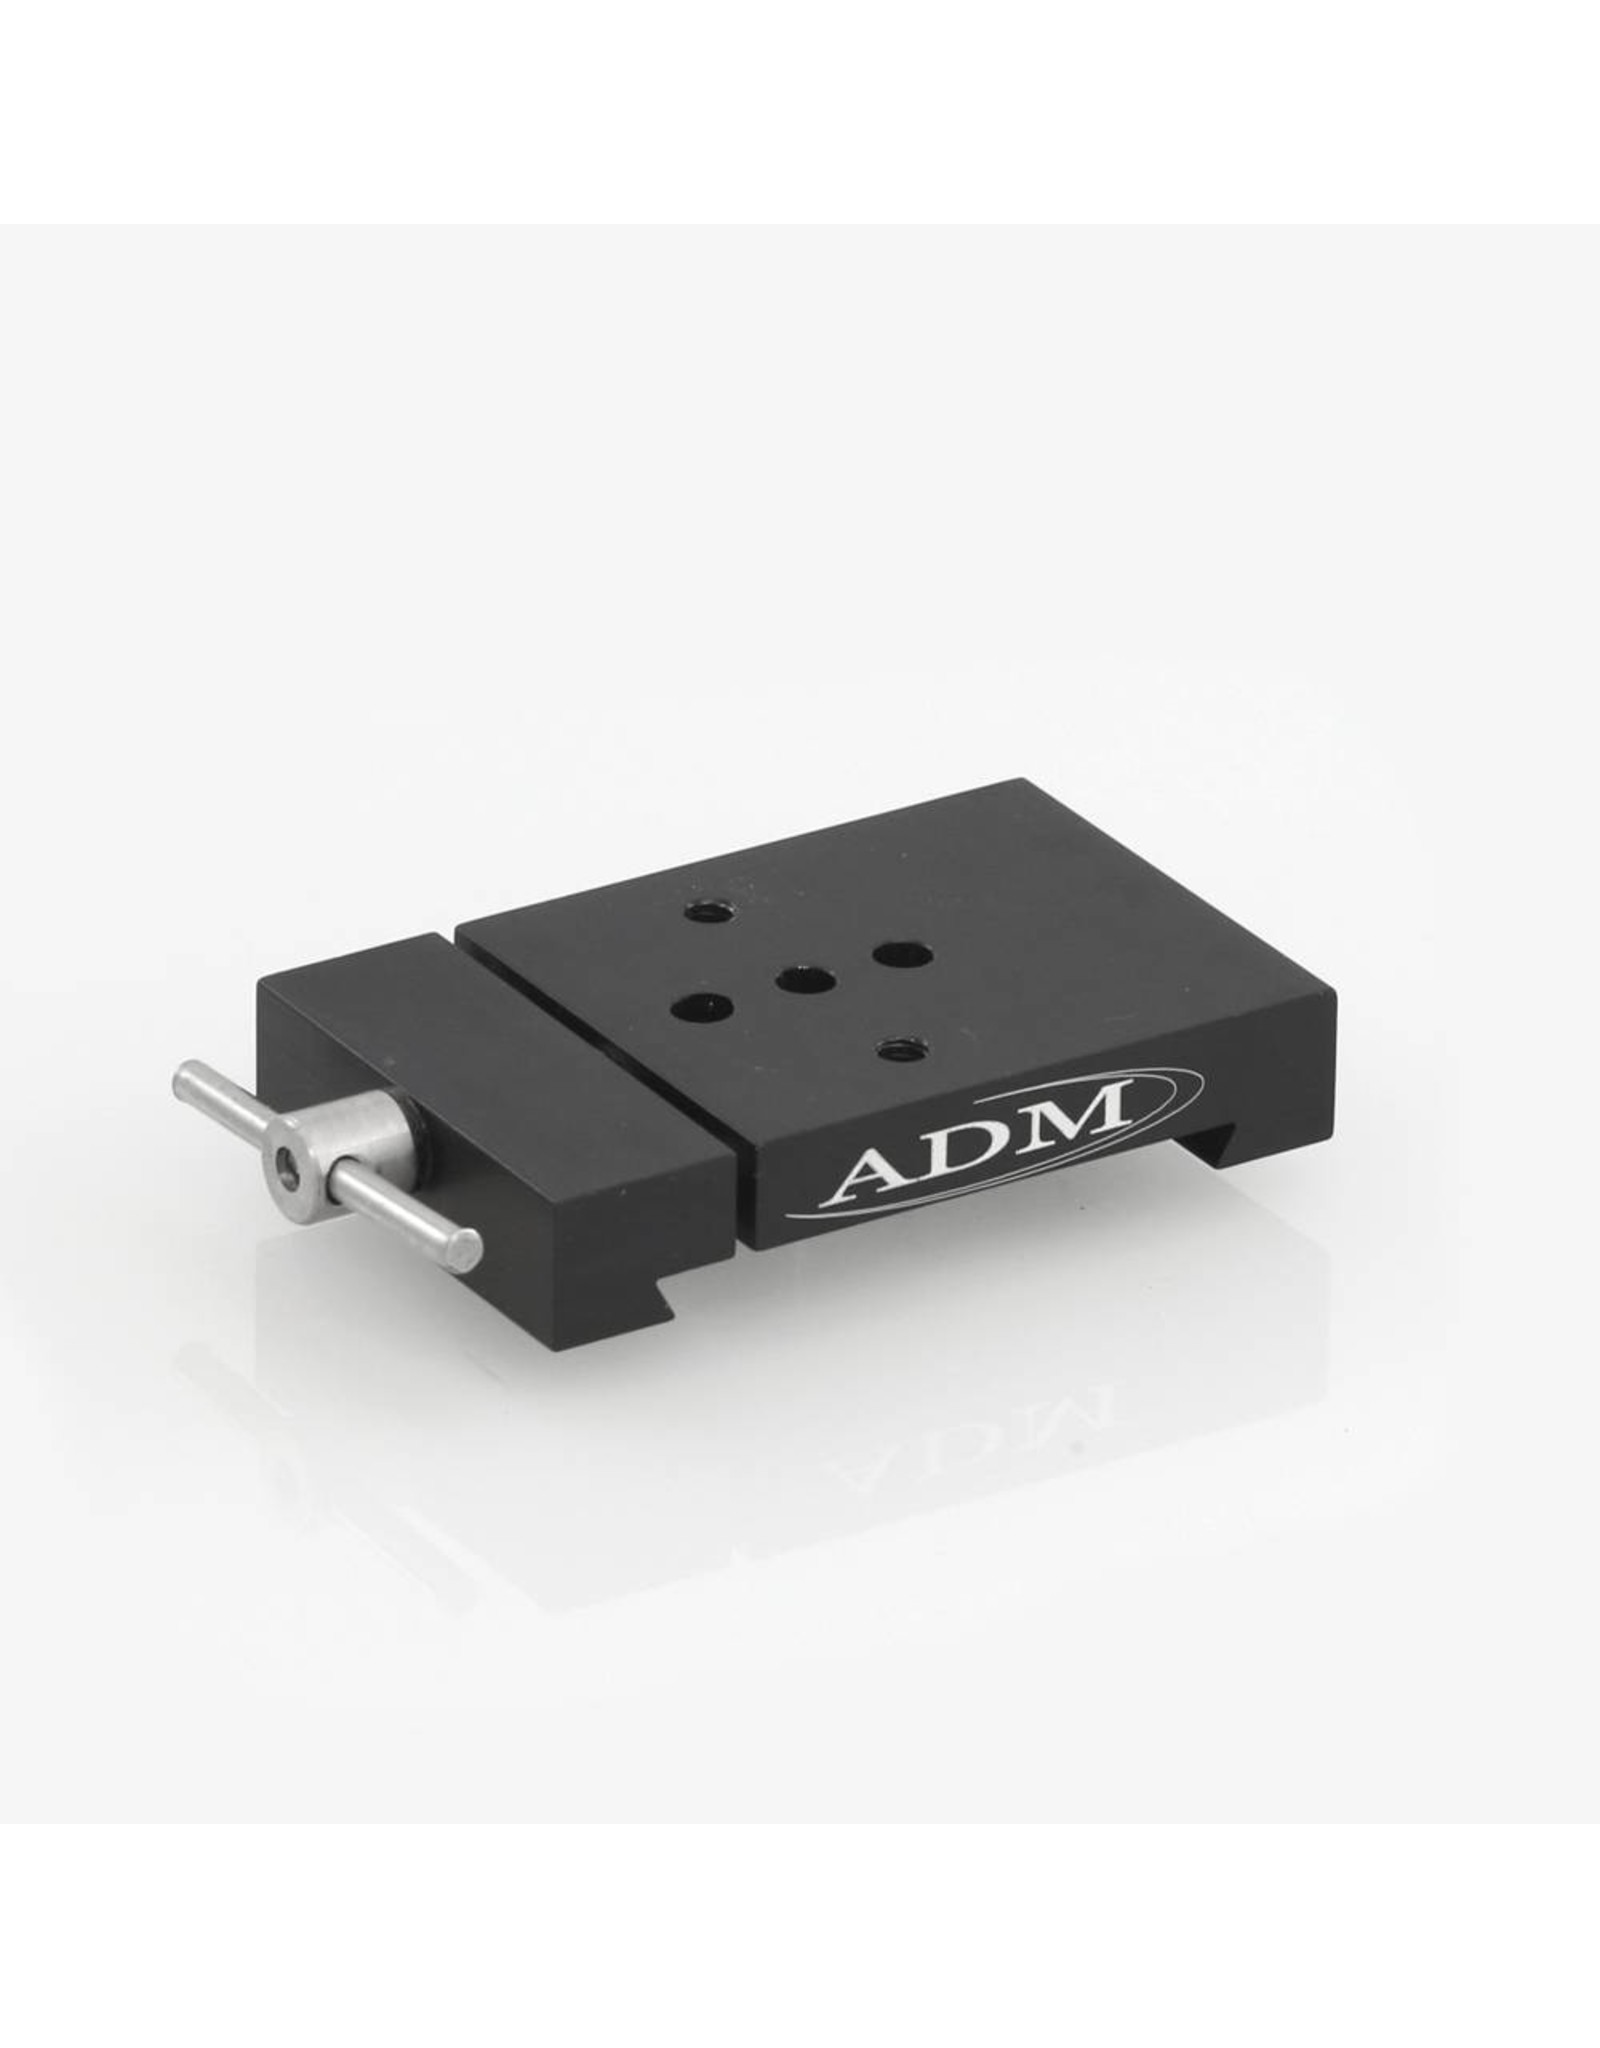 ADM ADM D Series Dovetail Adapter for Tele Vue Mounts